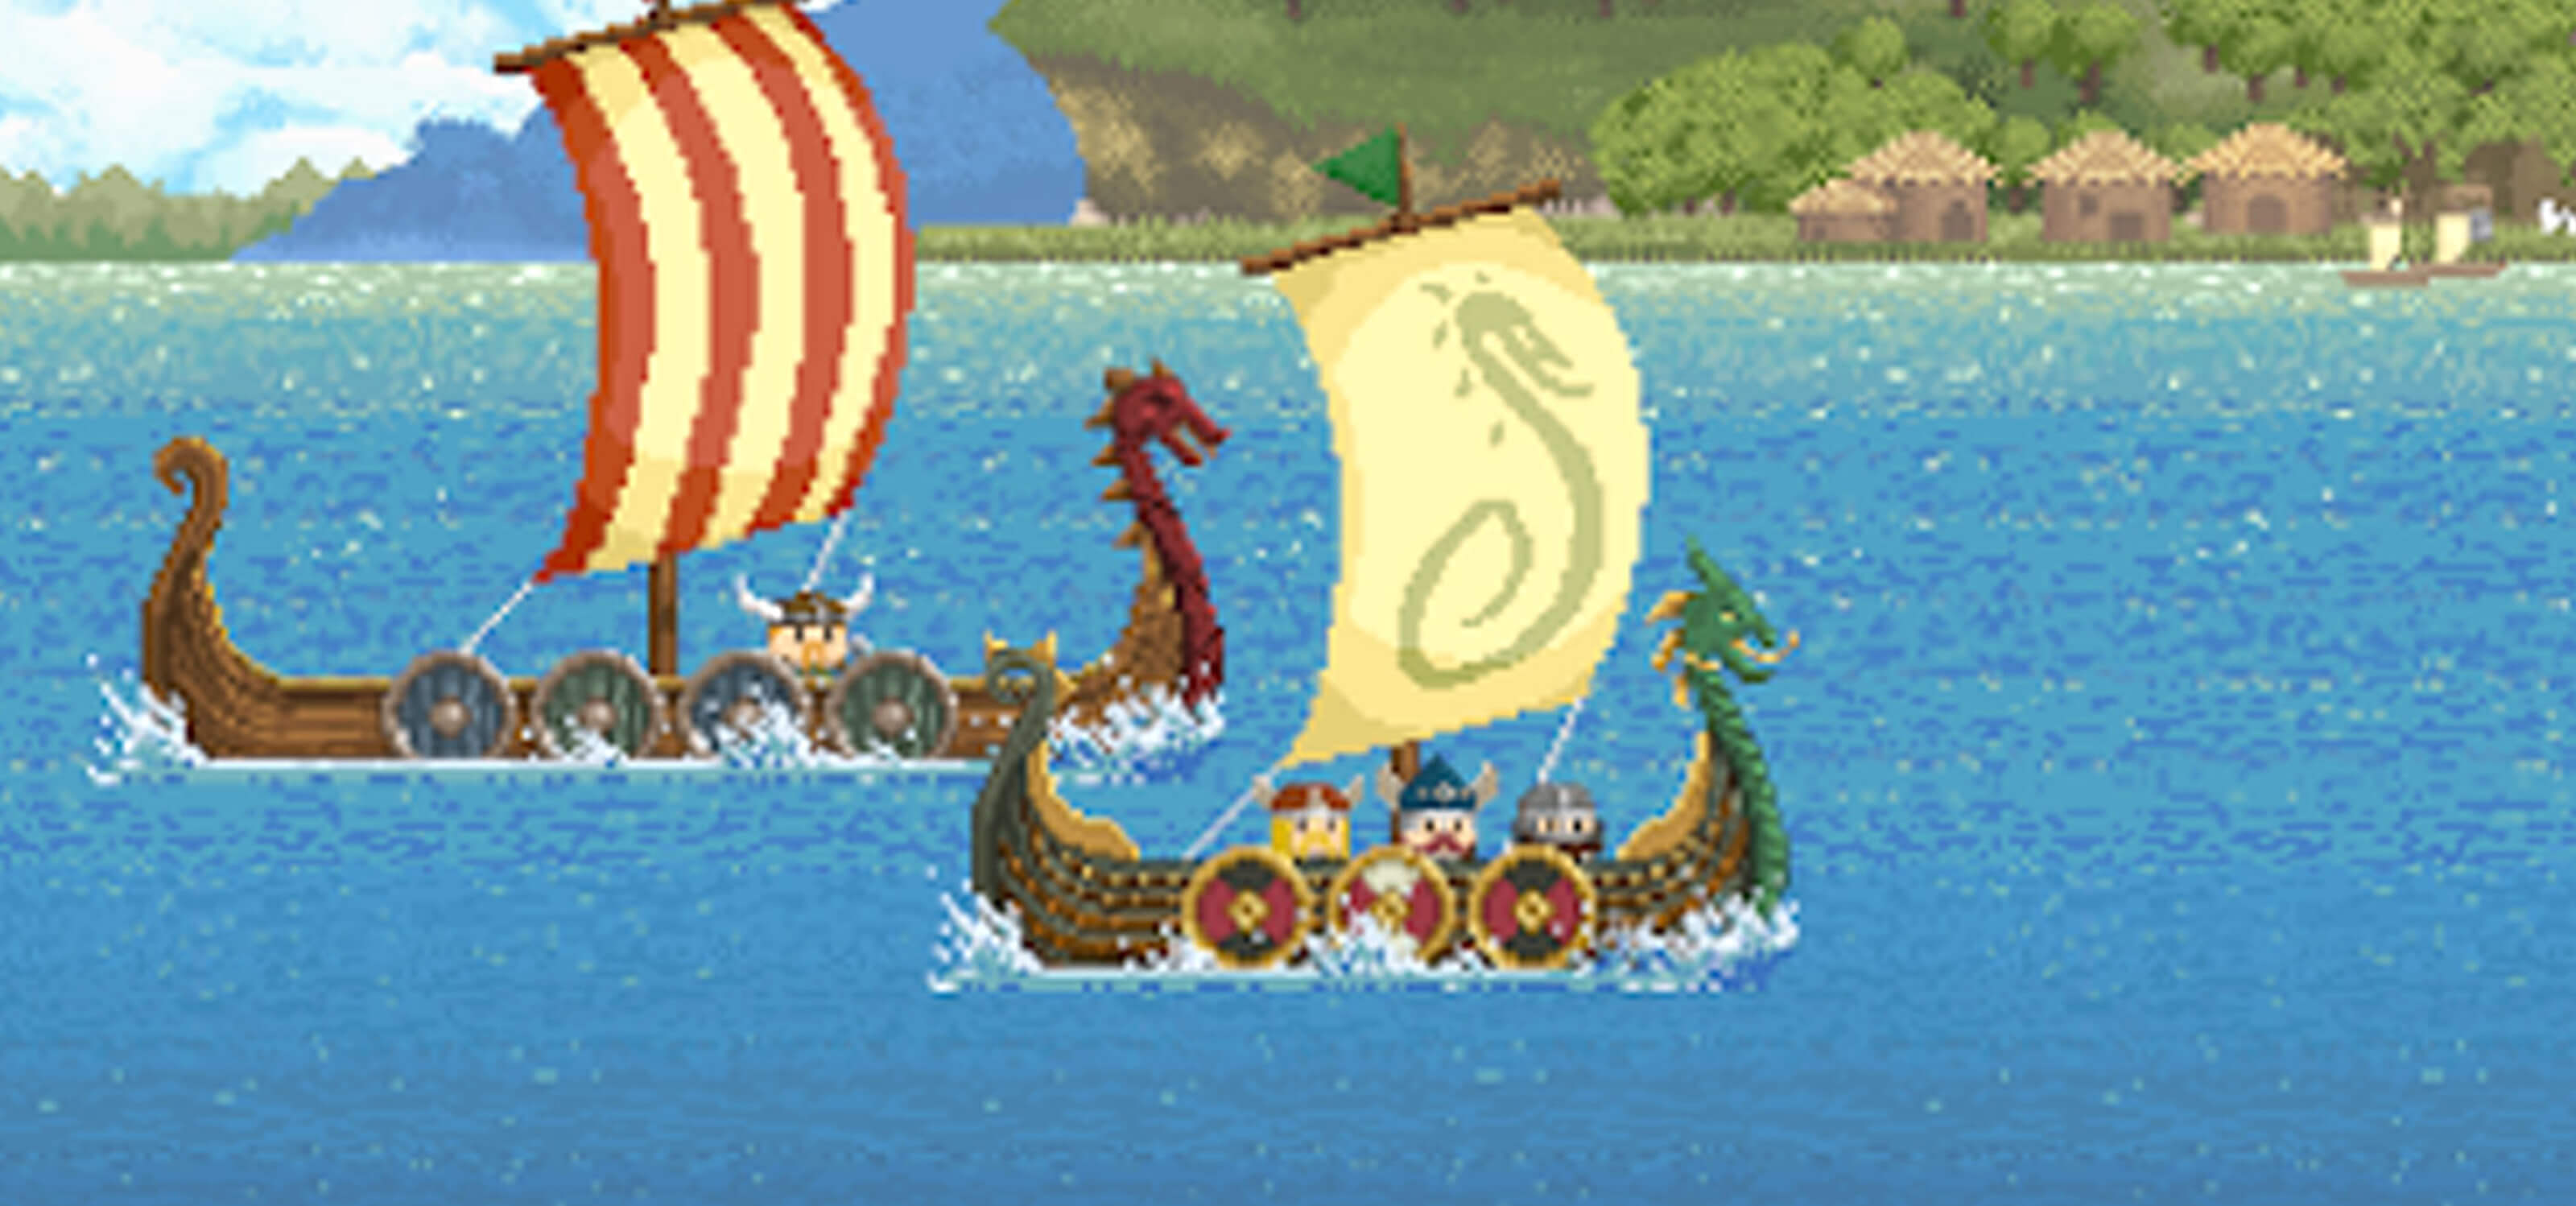 Pixel art screenshot of two viking dragon ships on the water sailing past a village in the background